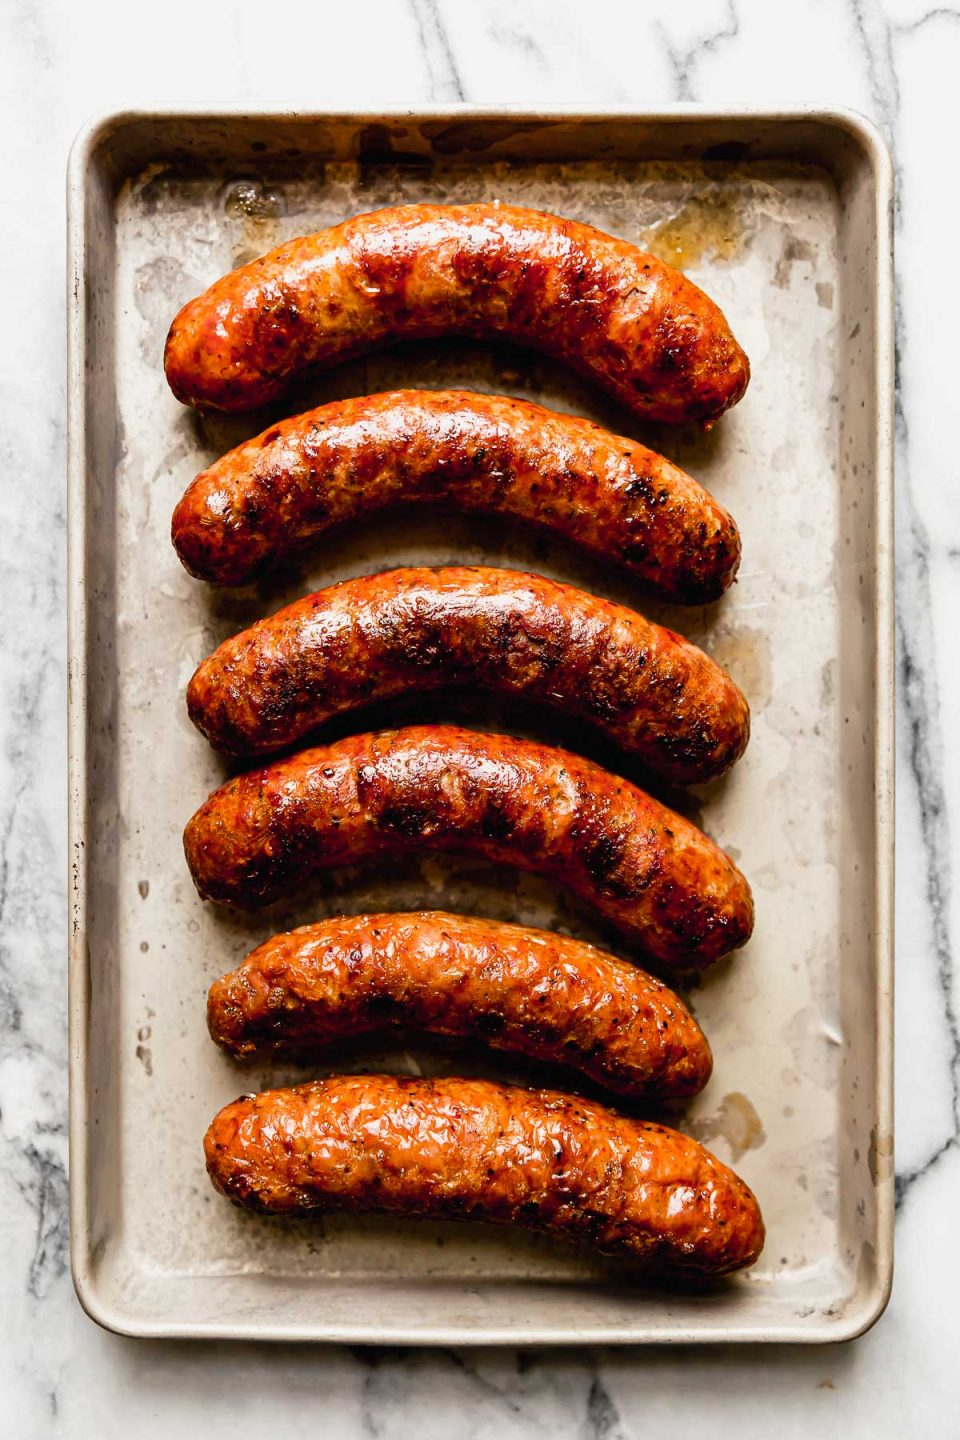 6 grilled Italian sausages shown on a small baking sheet atop a white marble surface.